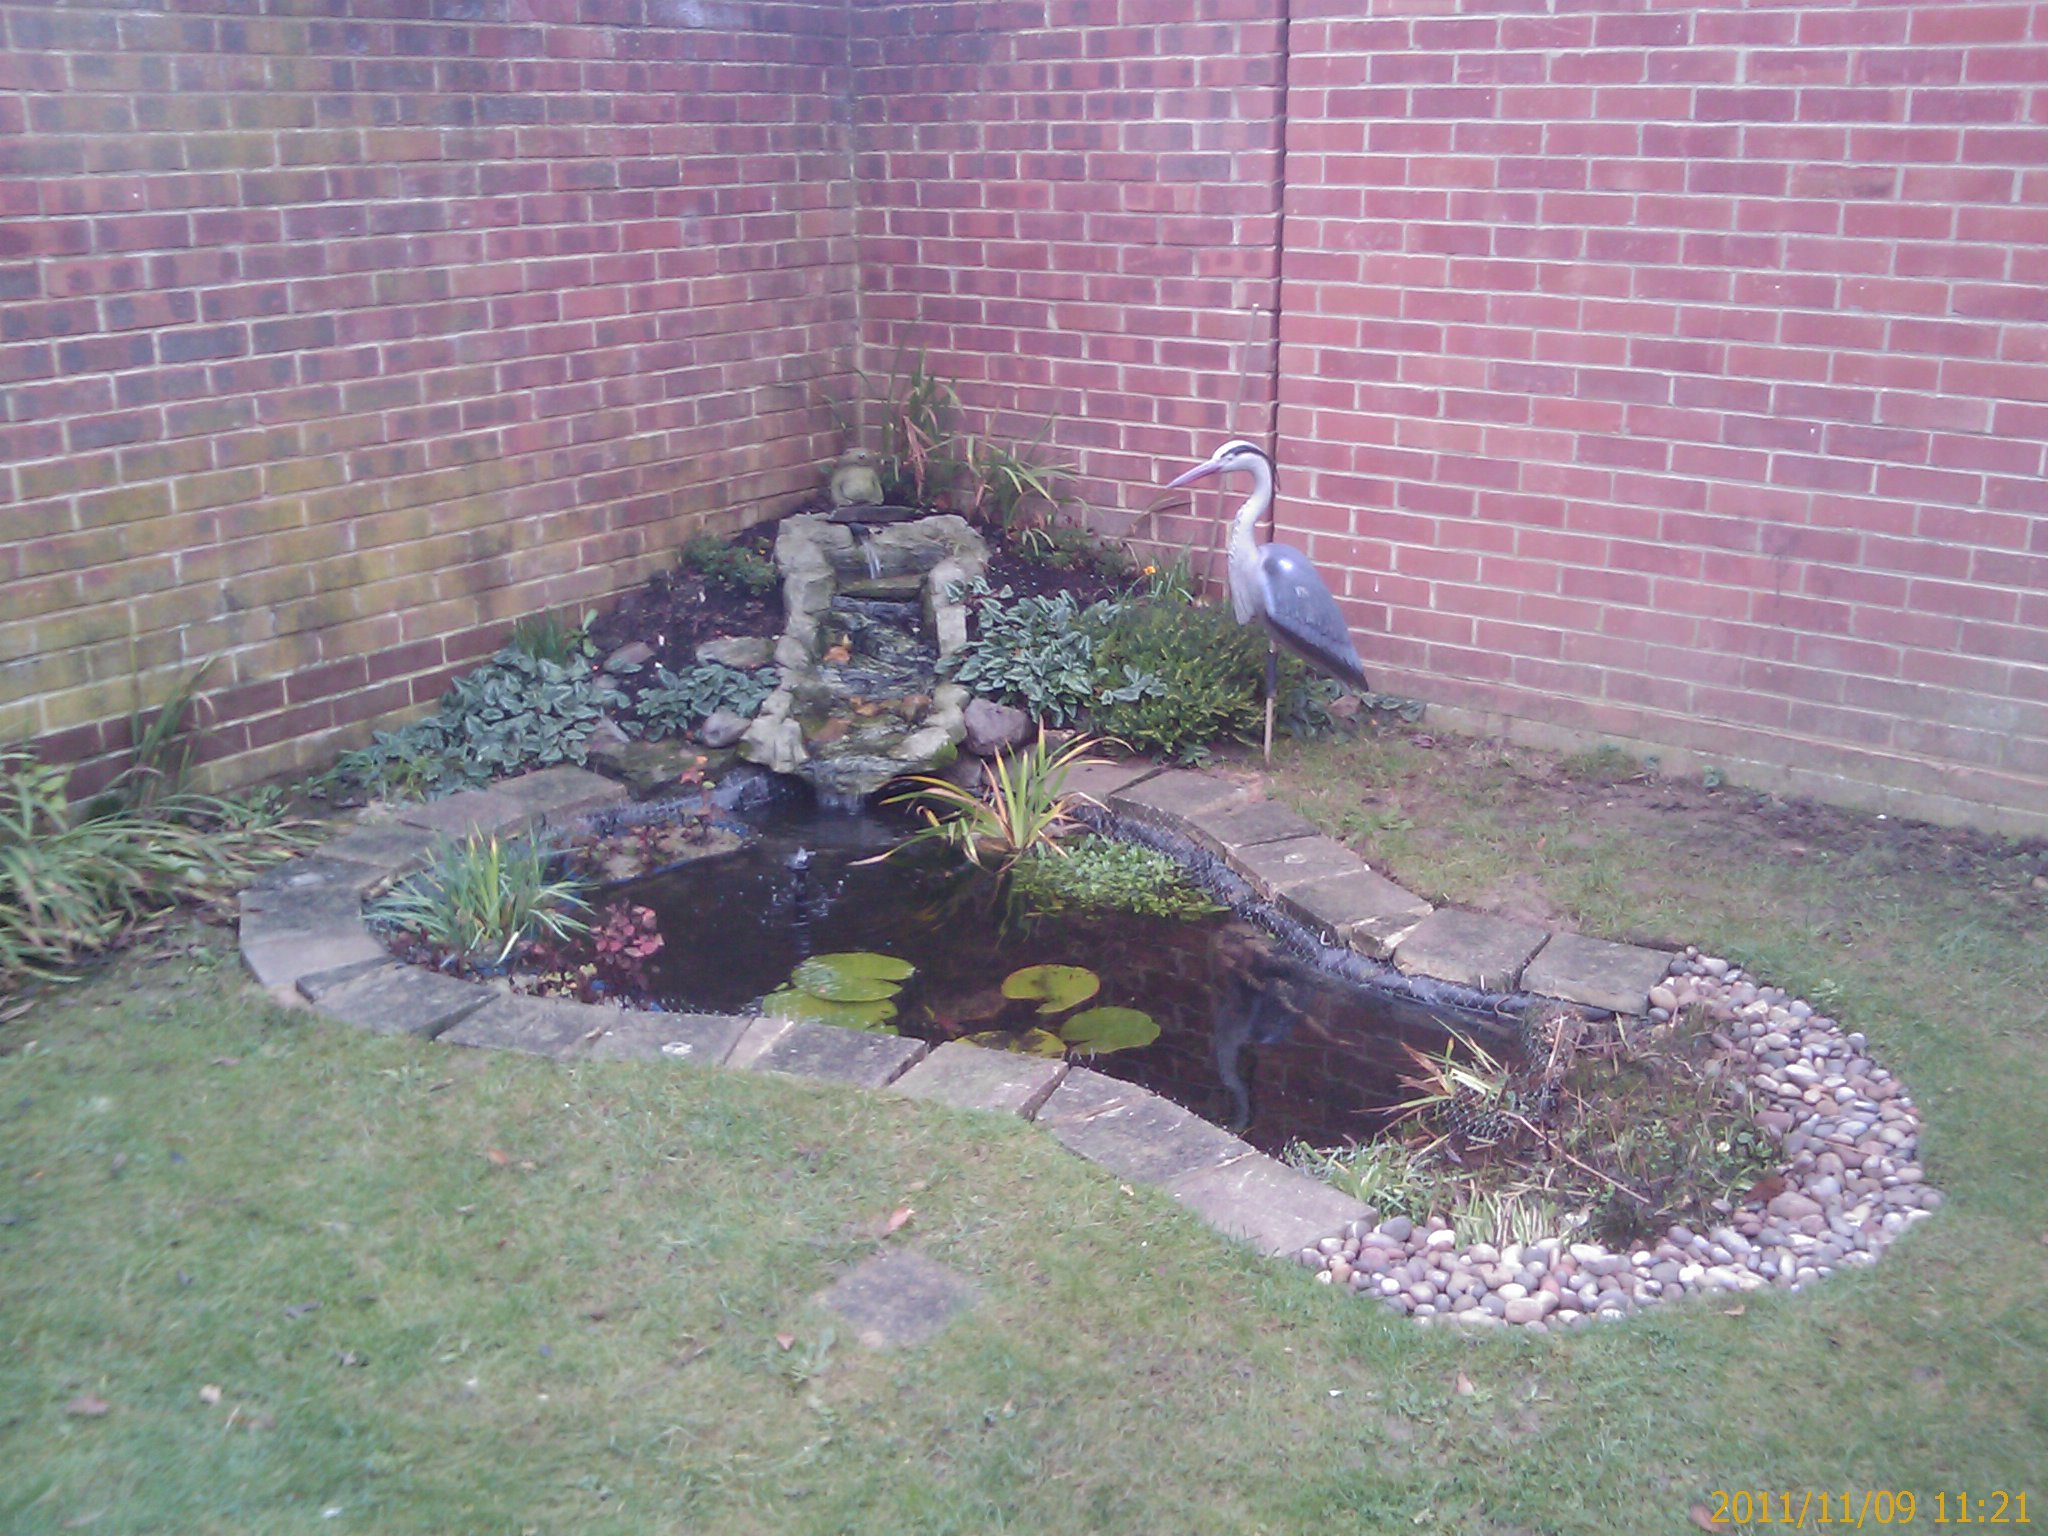 Re lining the fishpond keith 39 s blogs for Places to go fishing near me